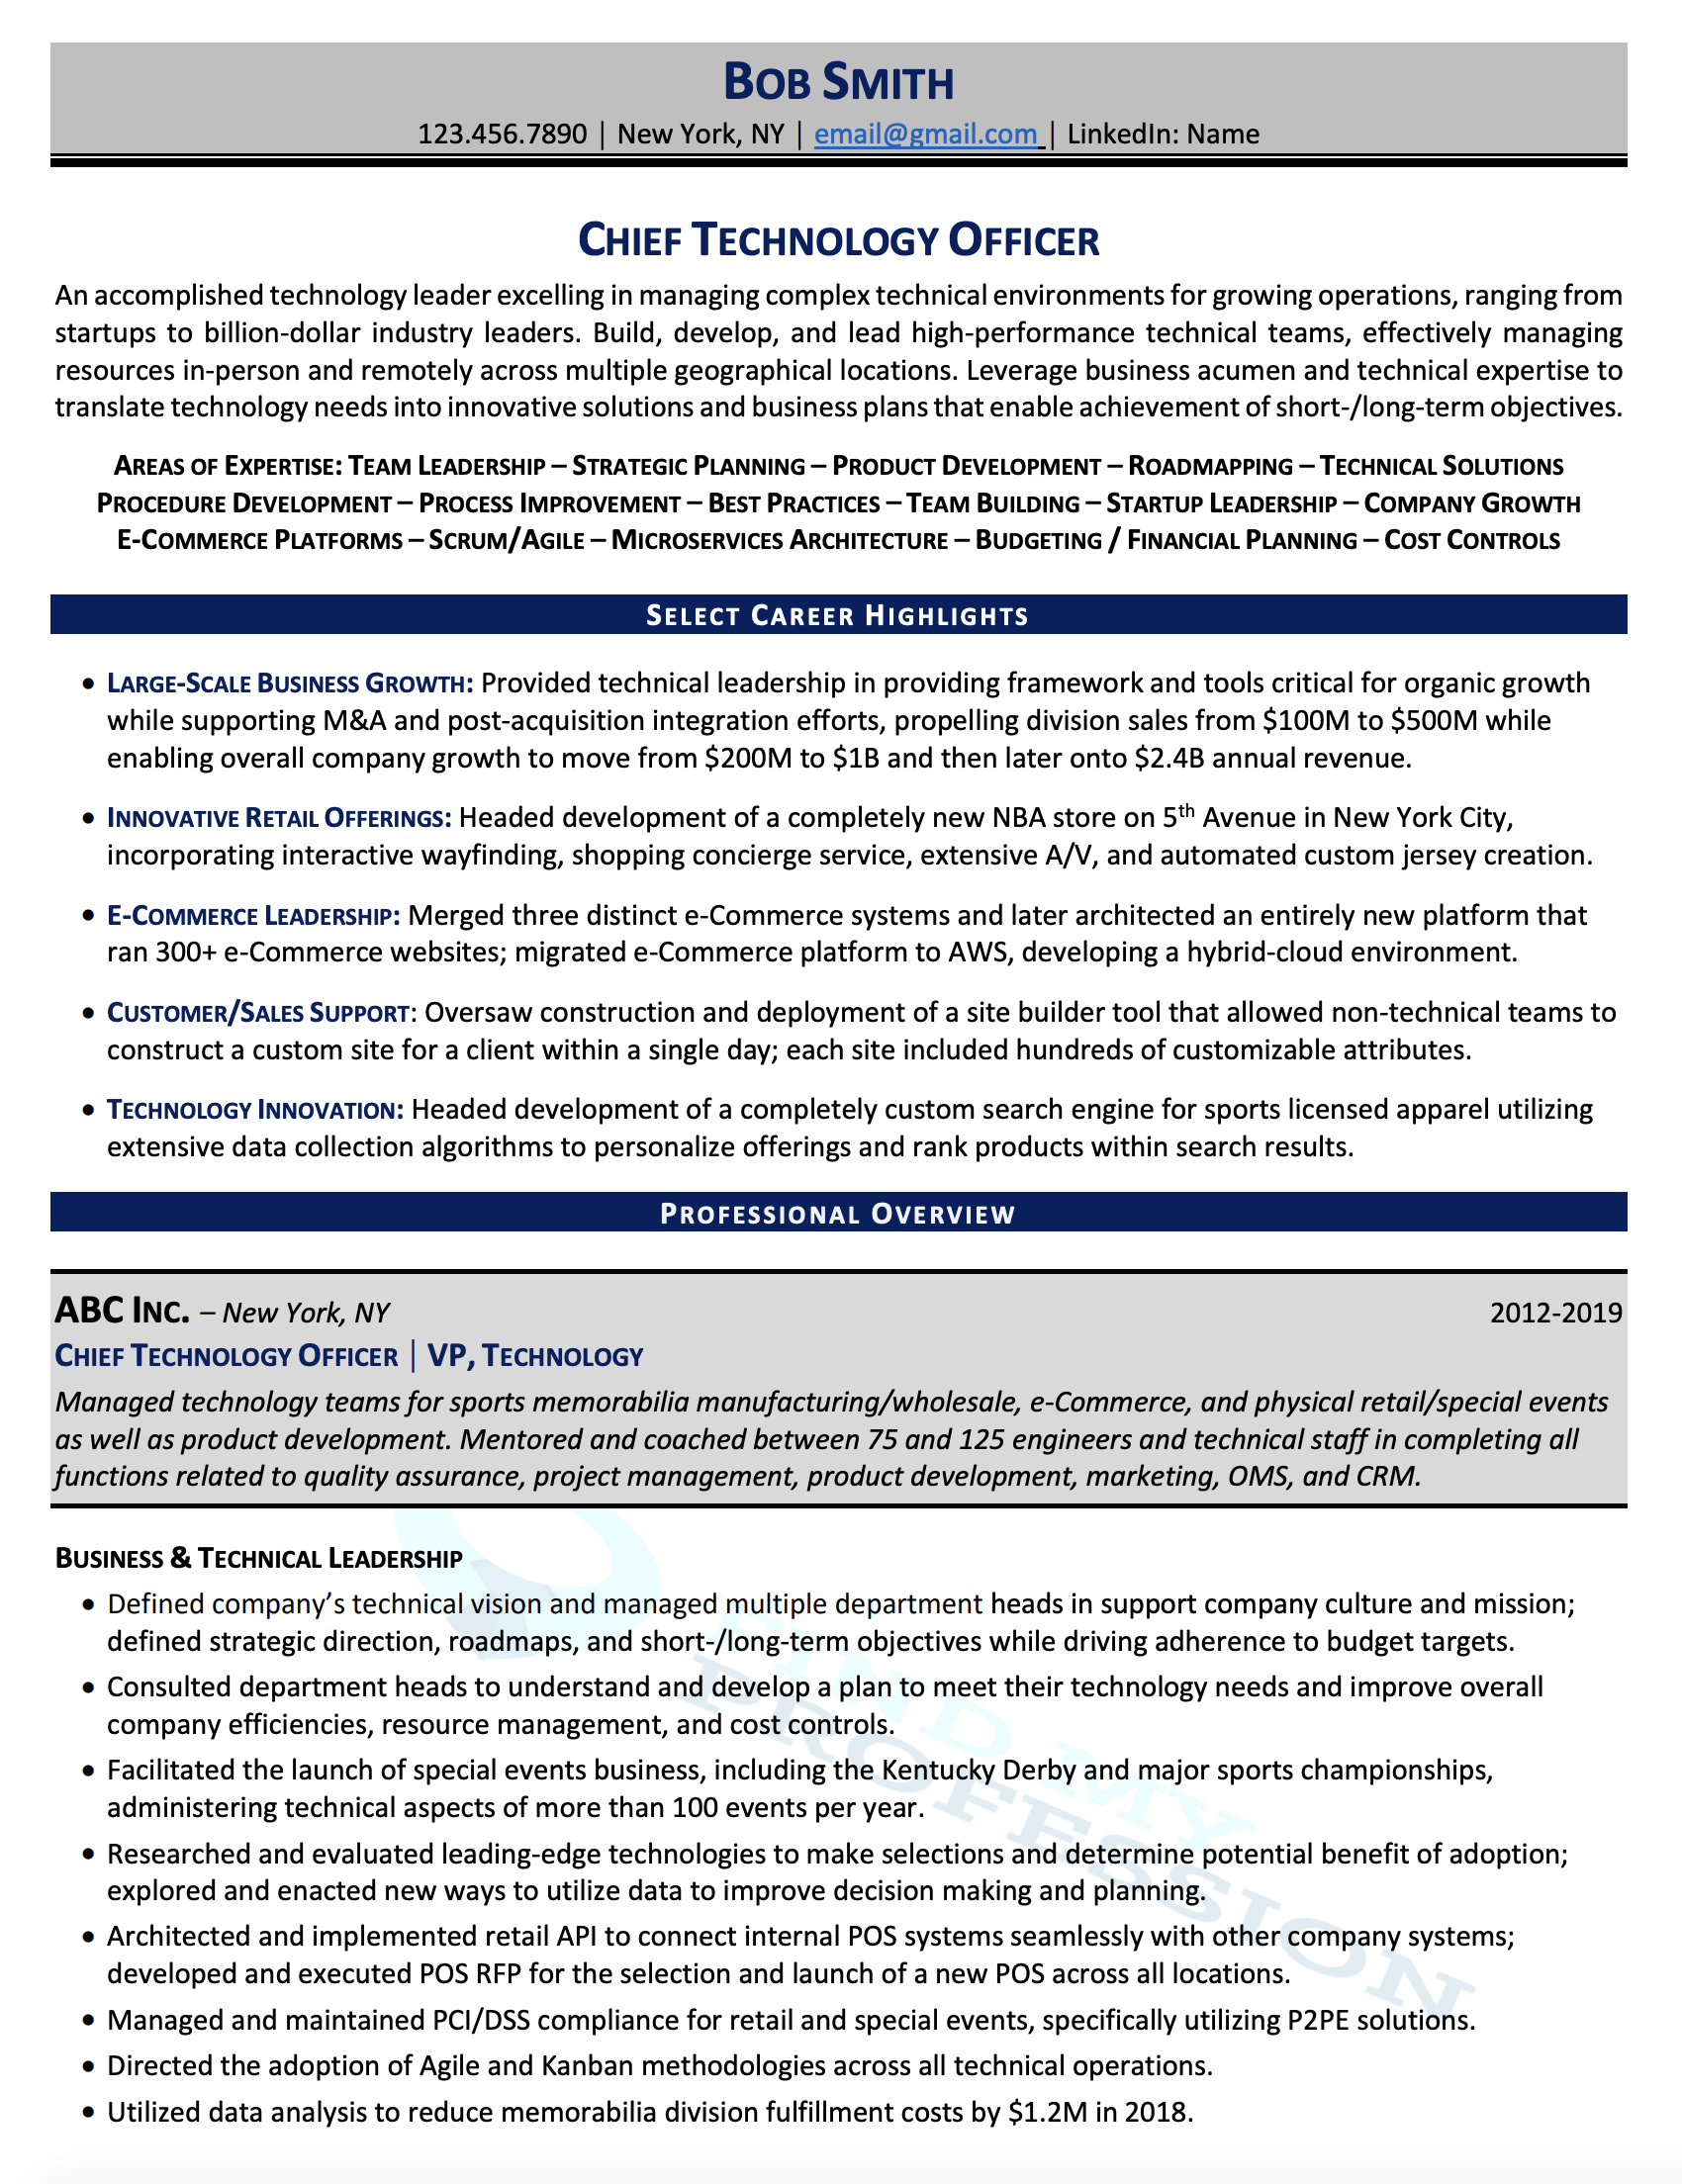 Chief Technology Officer (CTO) Resume Sample